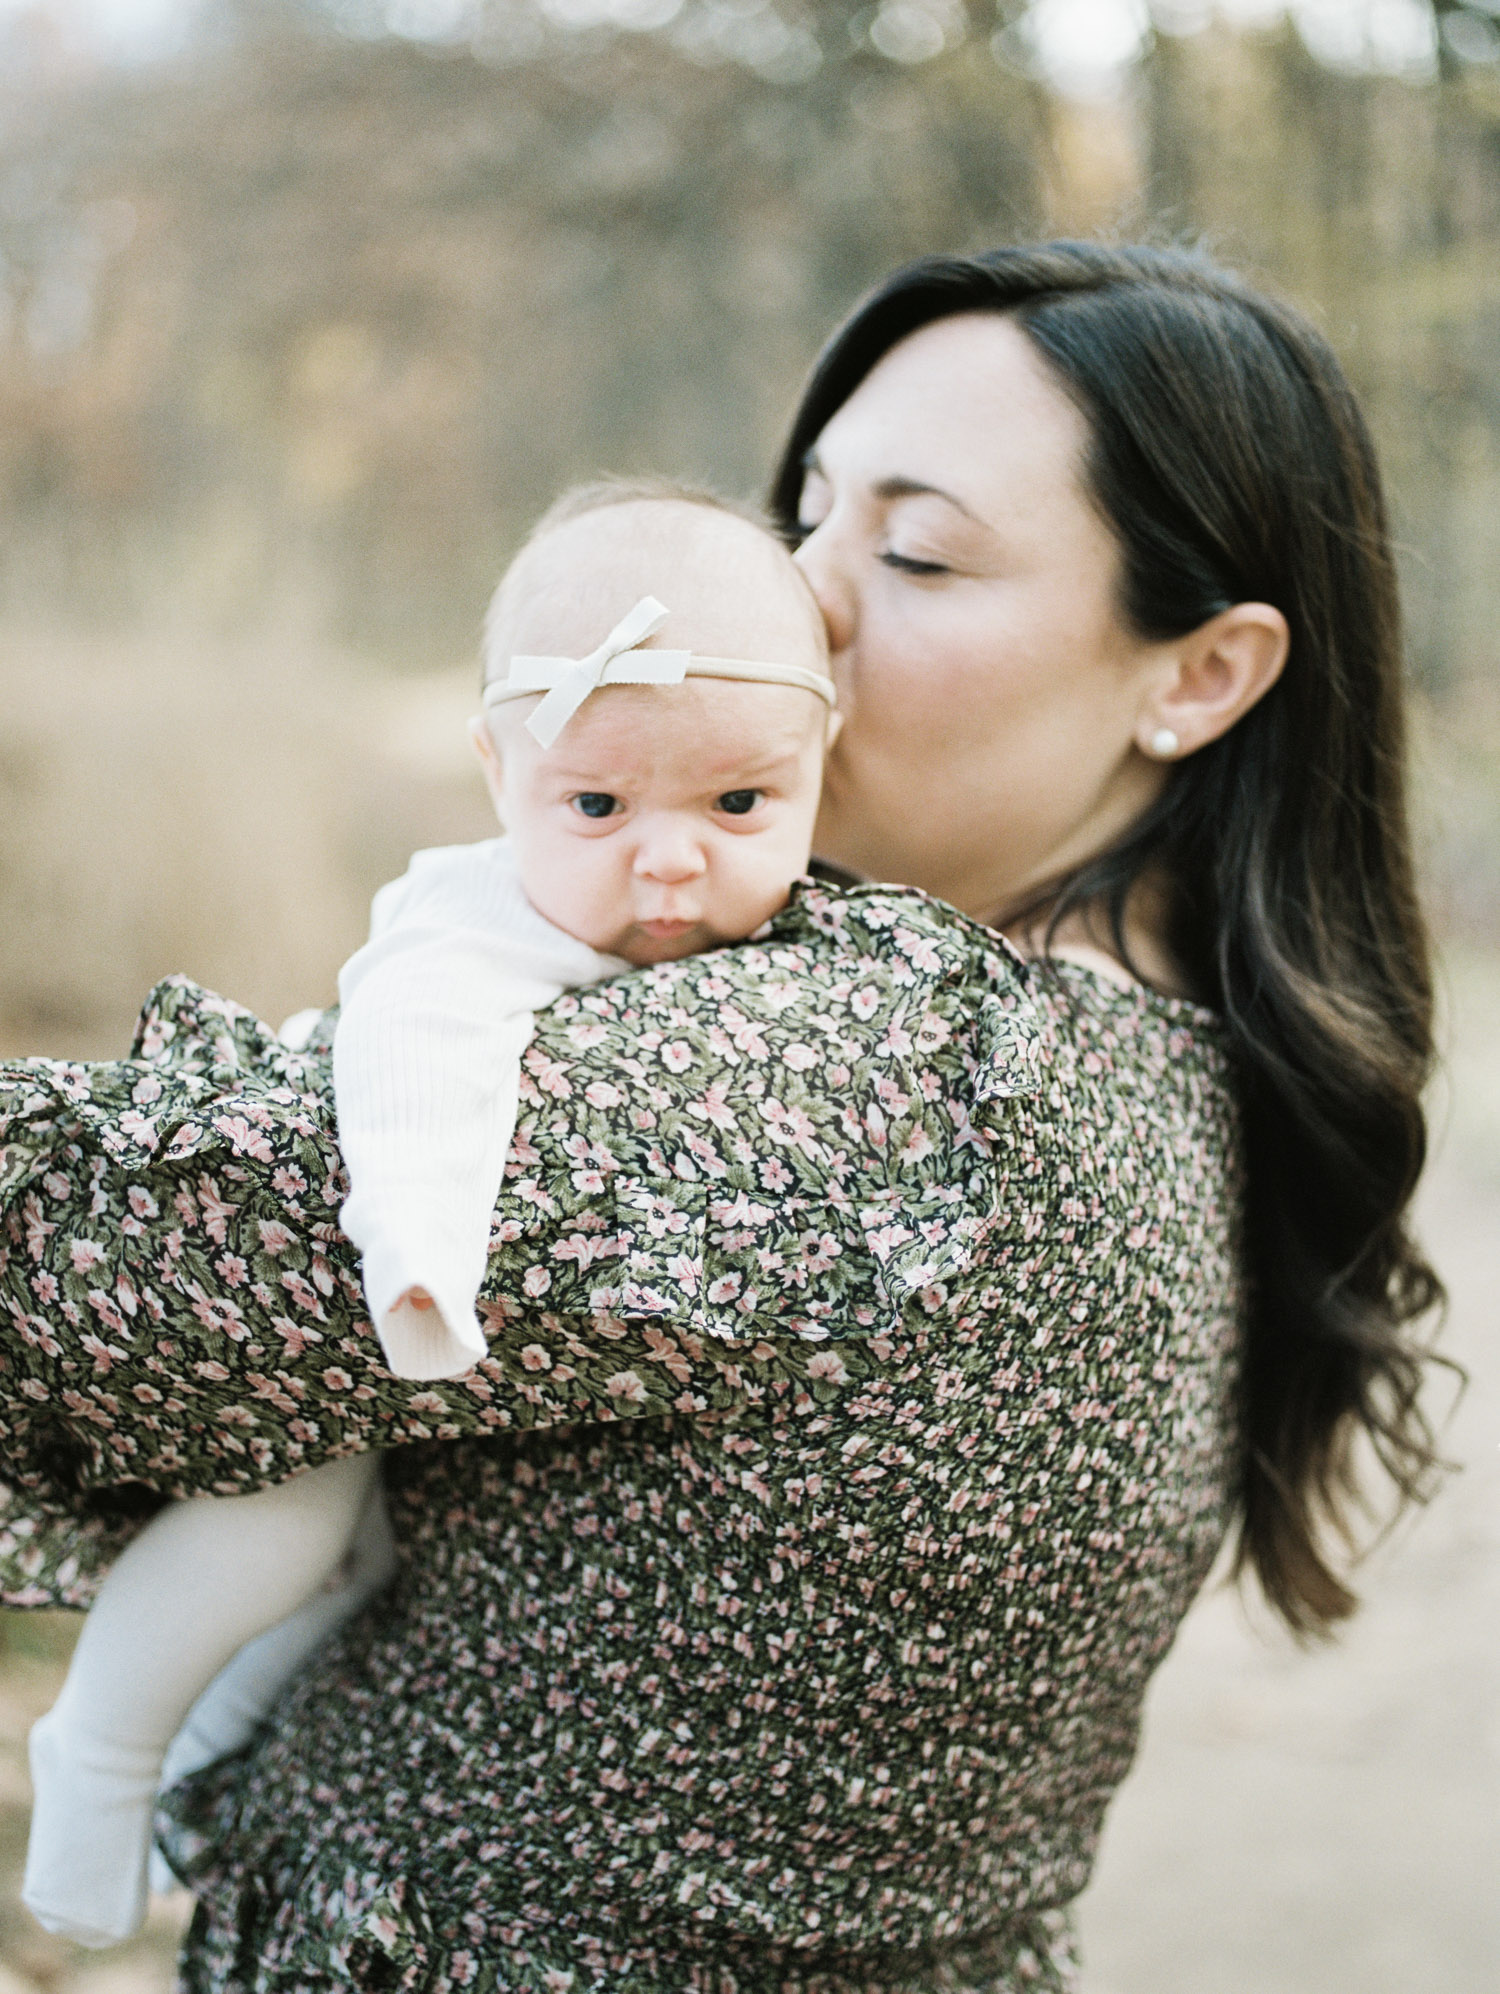 A mother kisses her newborn baby girl during fall family photos on film in Ann Arbor, Michigan